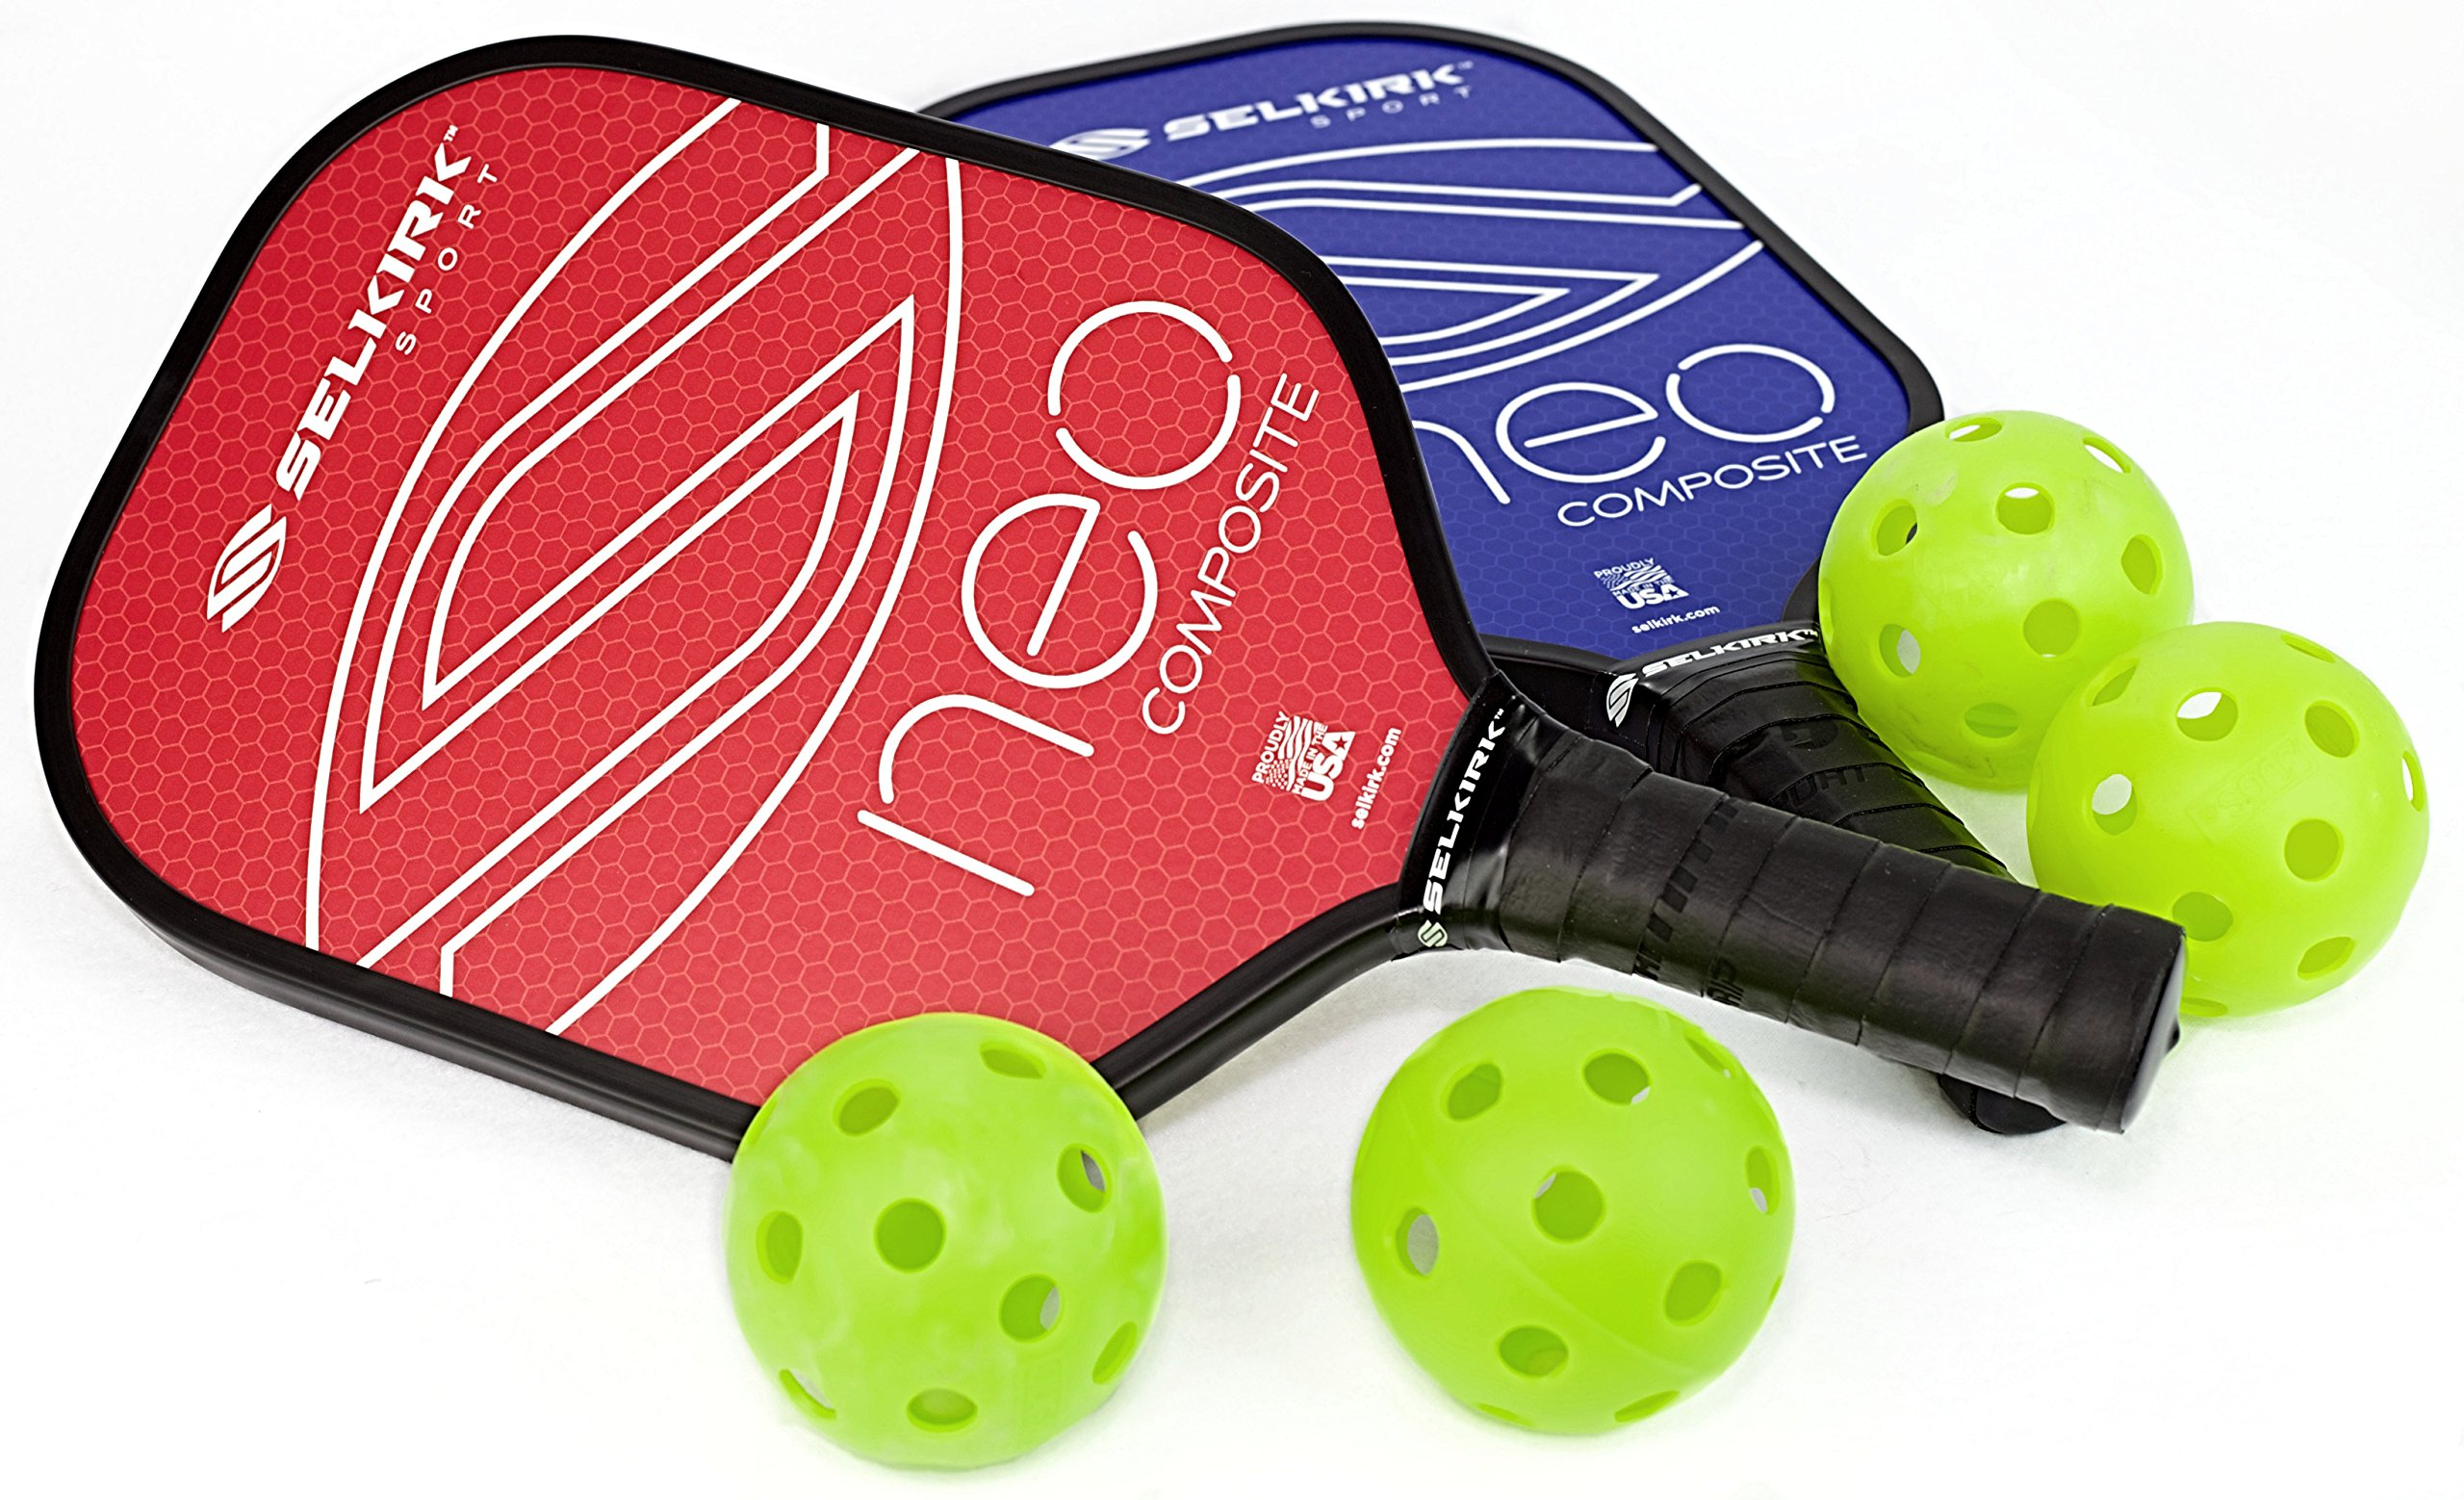 Selkirk NEO Composite Pickleball Paddle Set (2 Paddles + 4 Balls) - USAPA Approved - PowerCore Polymer Core - Composite Surface - EdgeSentry Protection - ThinGrip Handle - Pickleball Racket/Racquet. by Selkirk Sport